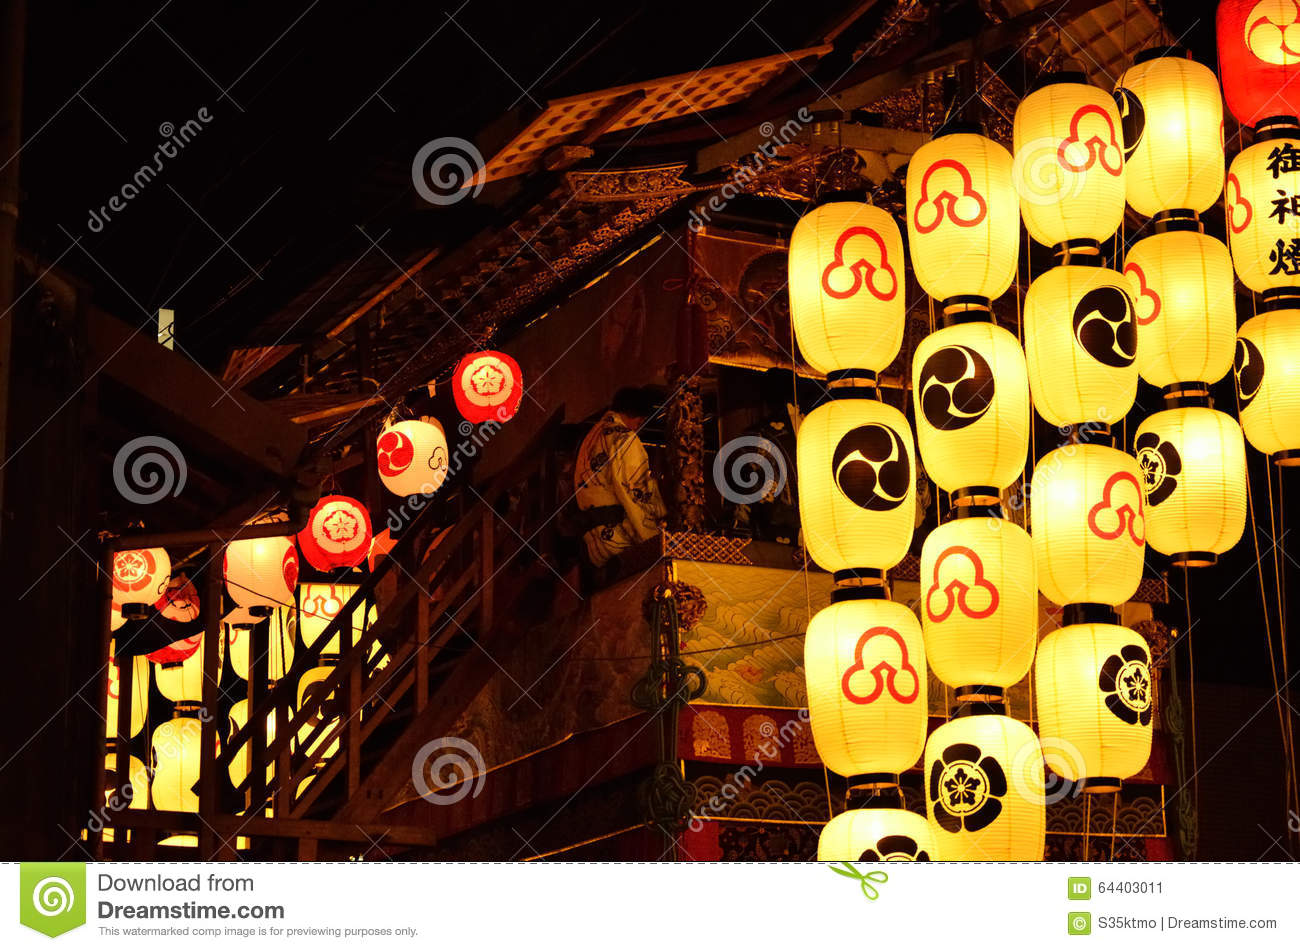 Night of gion festival in kyoto, japan